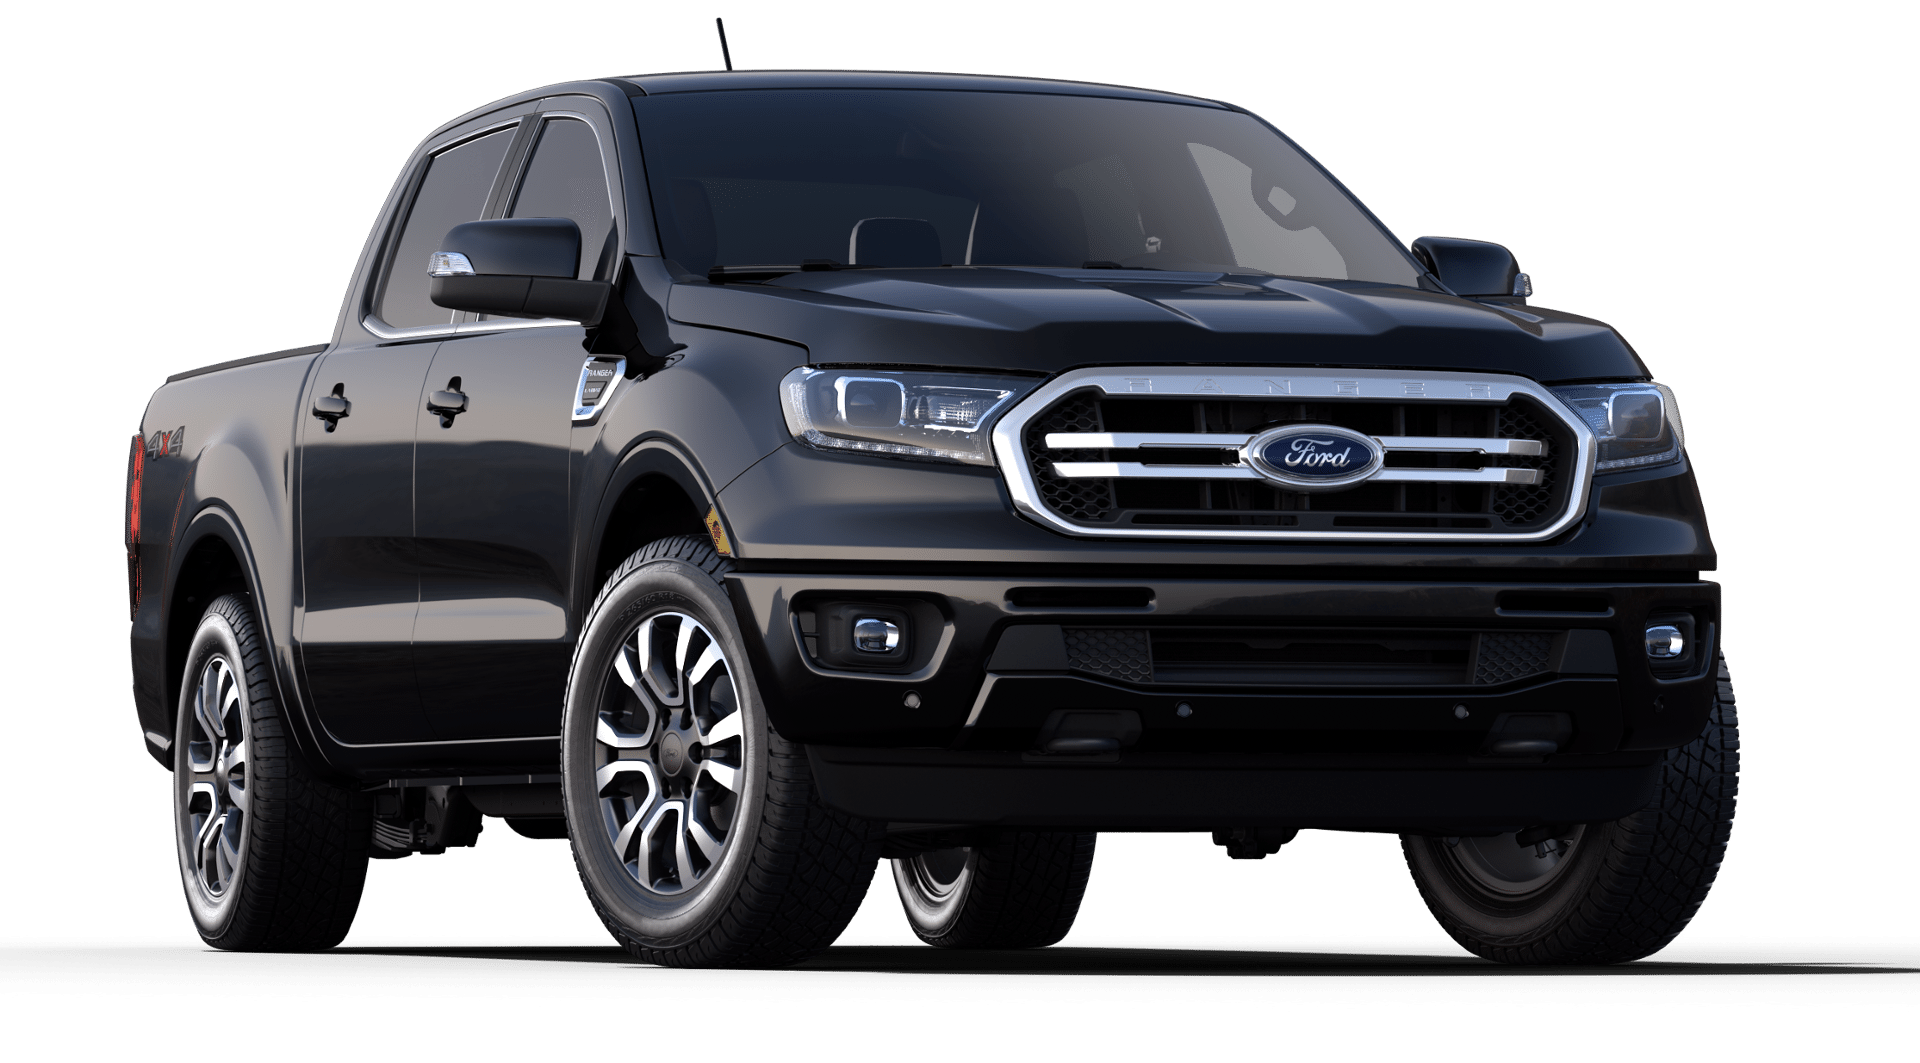 14 A F2019 Ford Ranger Images